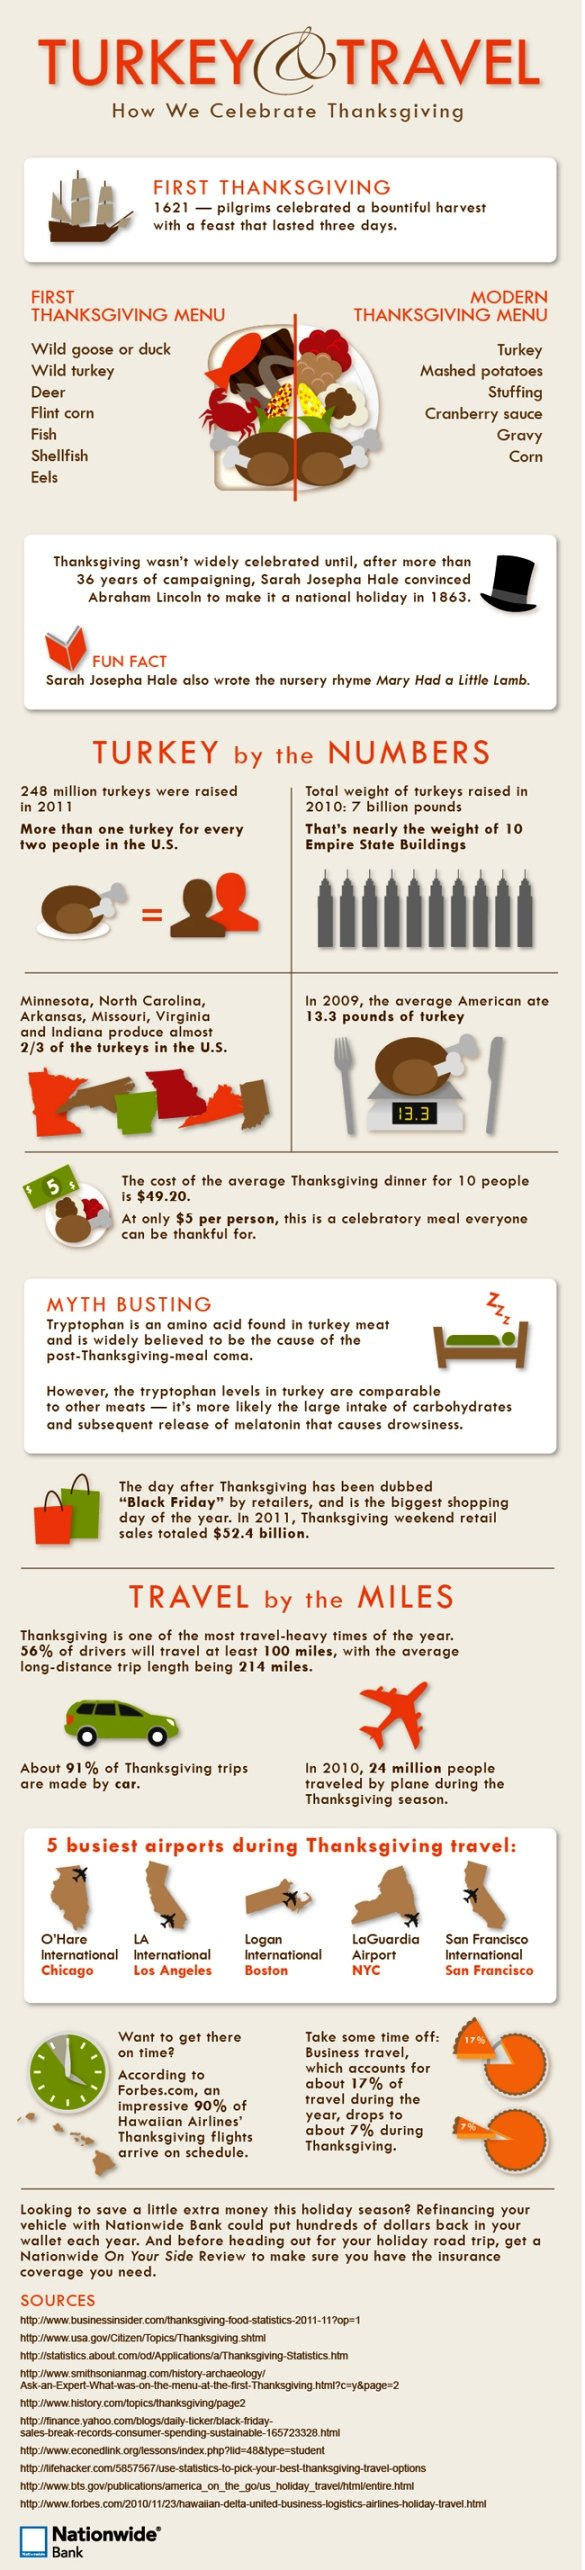 Turkey and Travel: How we celebrate thanksgiving #infographic